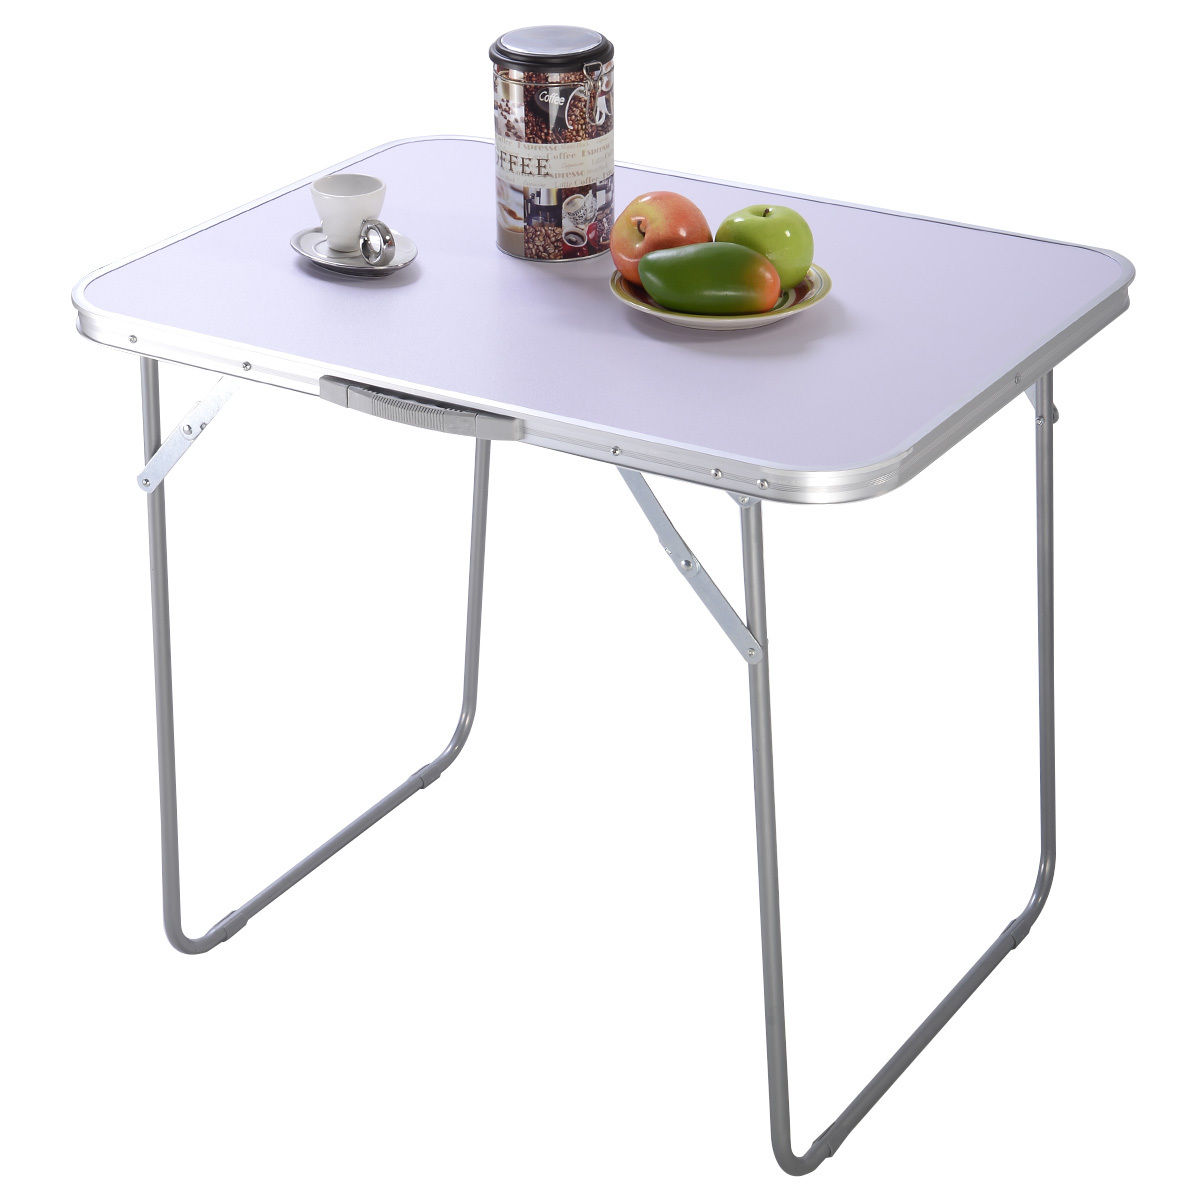 In / Outdoor Dining Camping Portable Folding Table